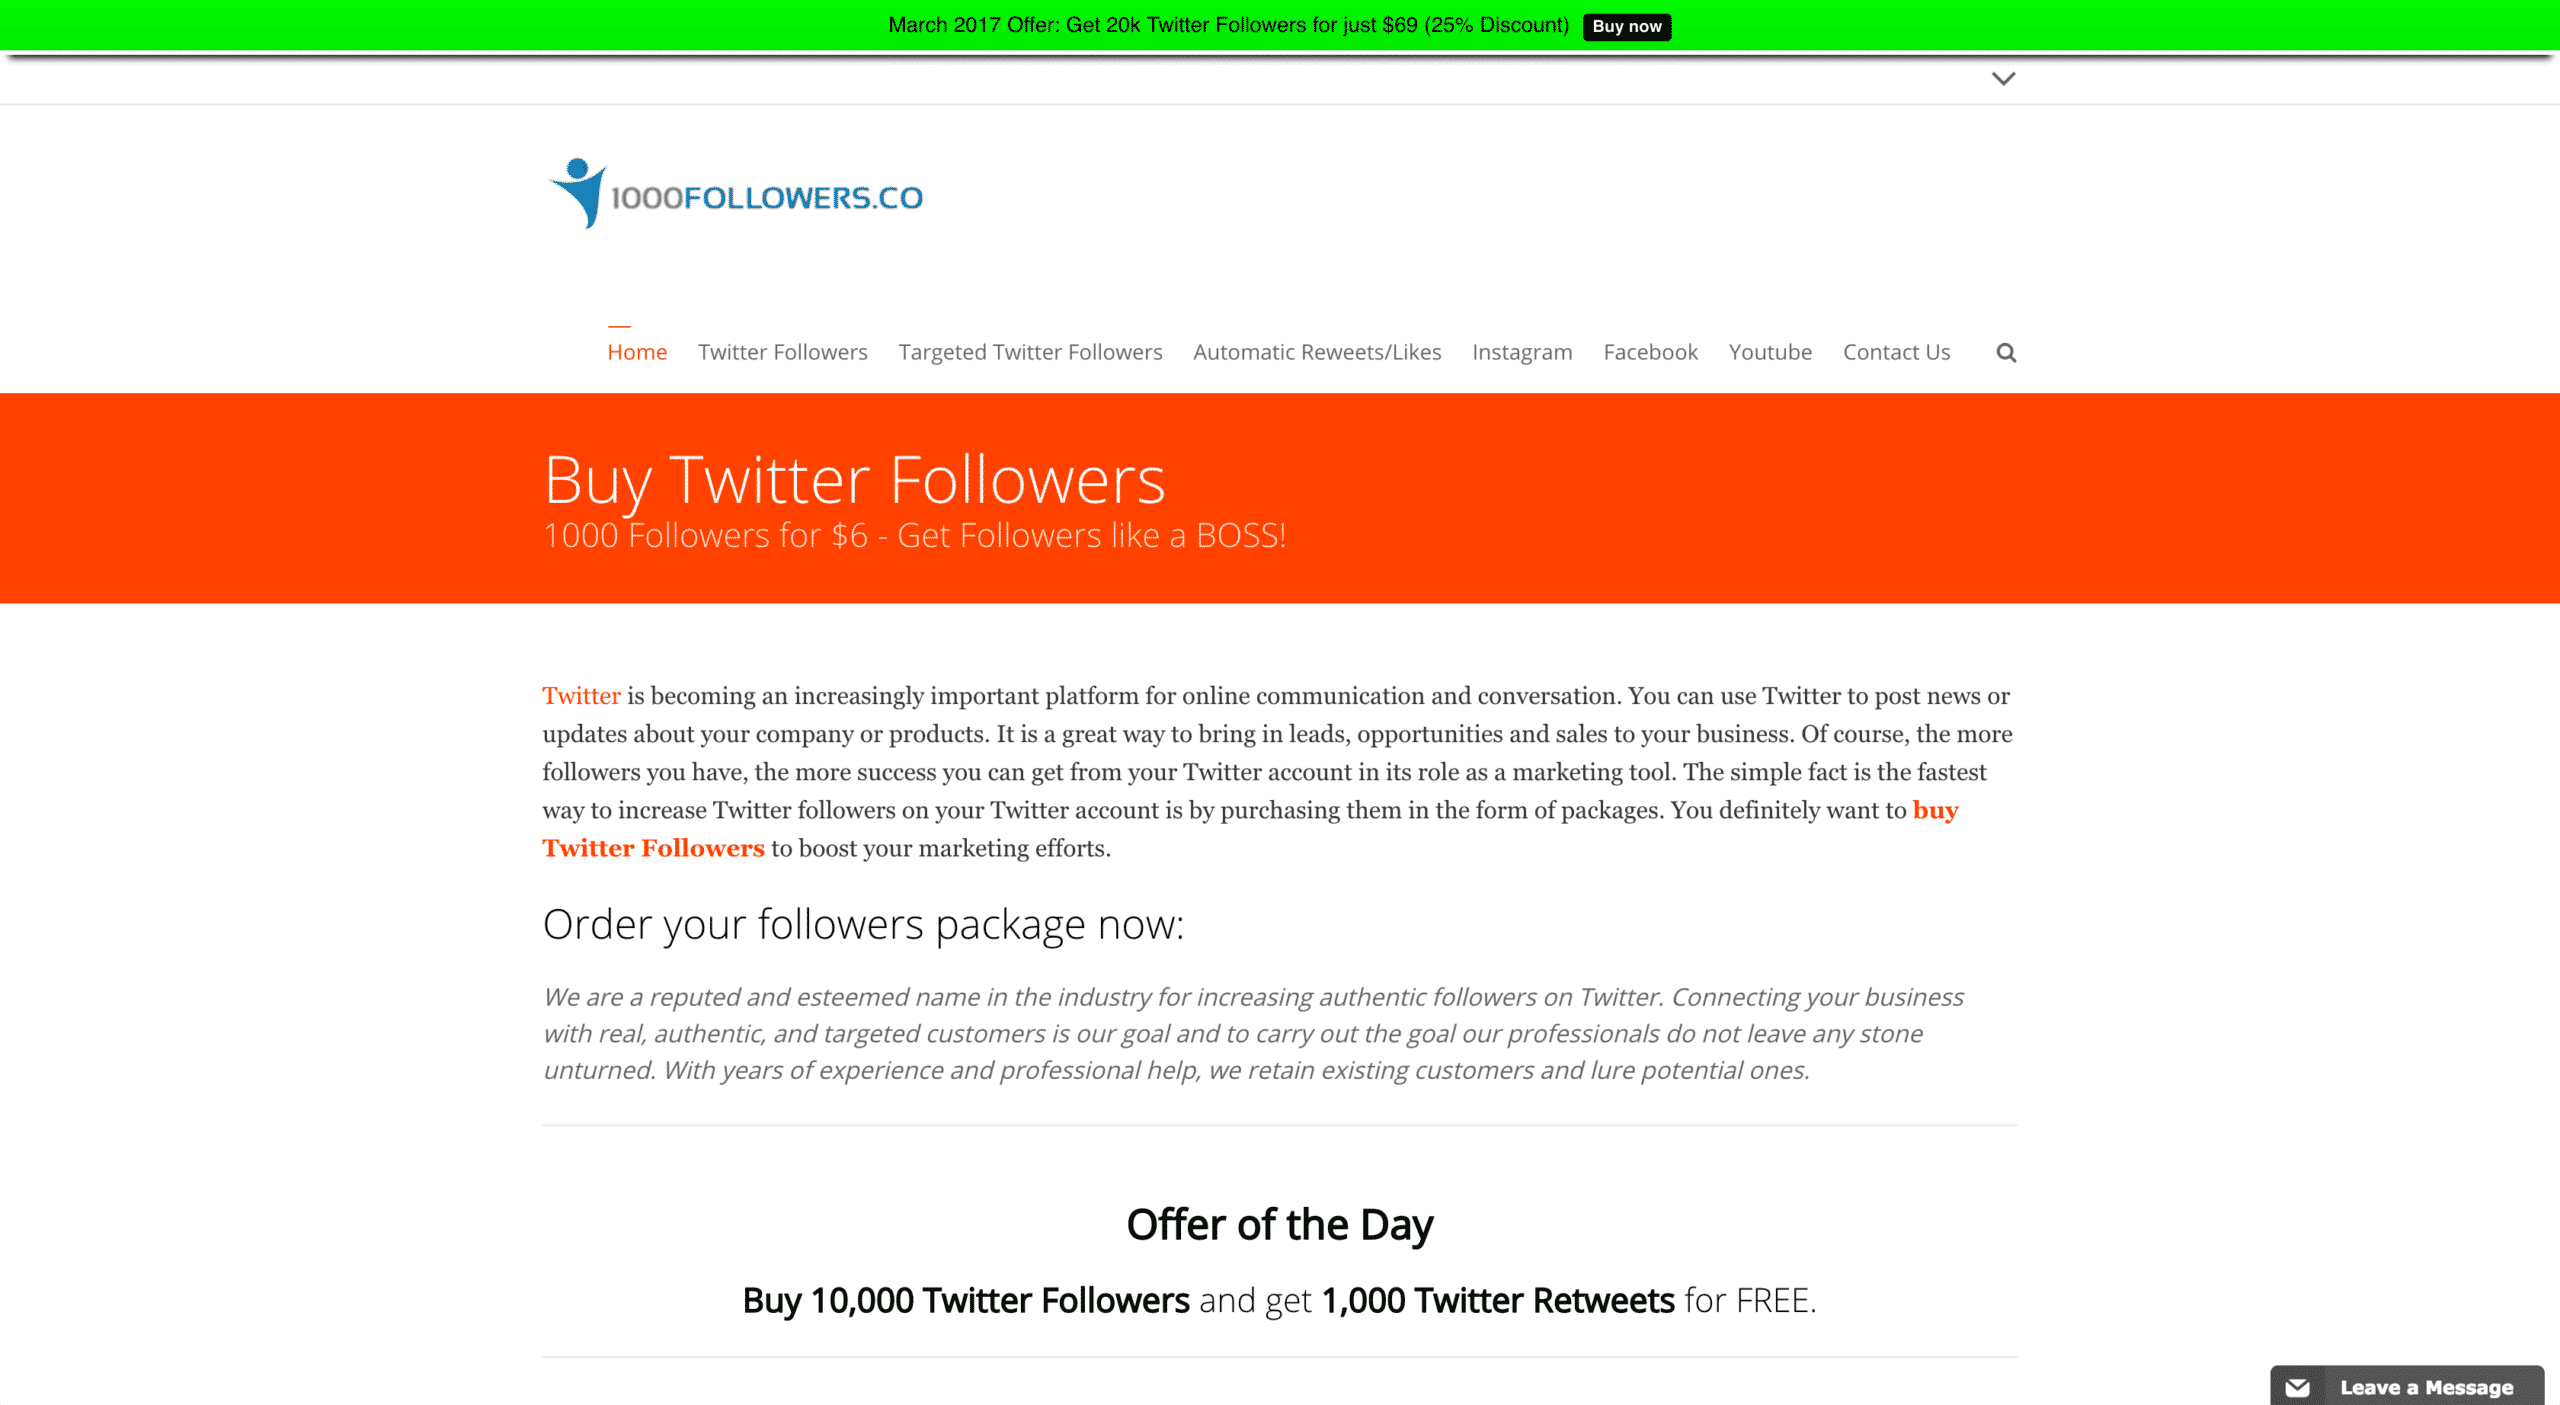 Buy1000Followers Reviews, Comparisons, & Test Results